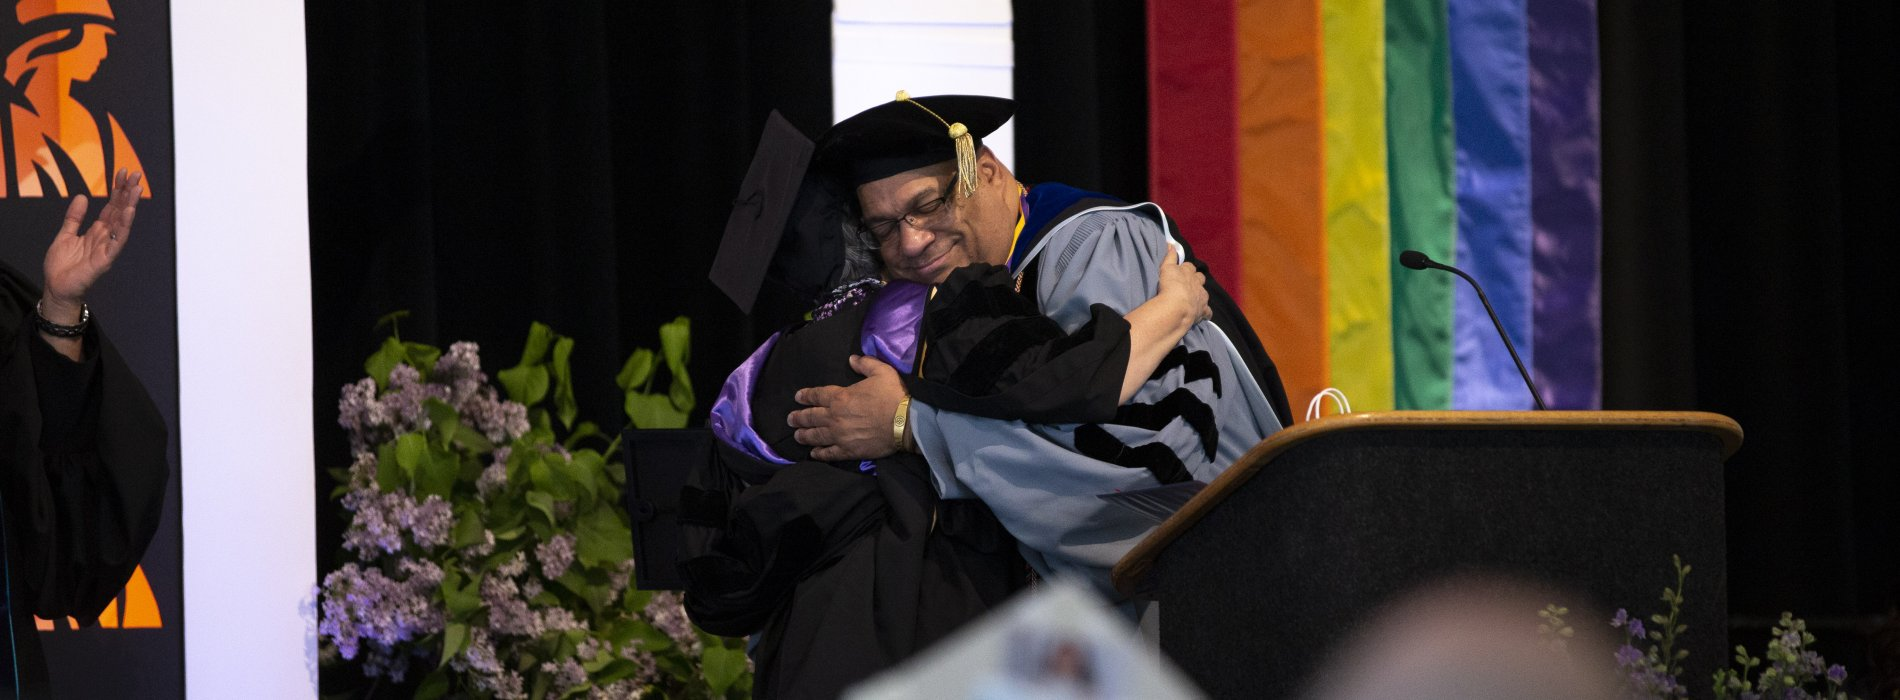 A faculty member hugs a student during the 2019 Lavender Celebration